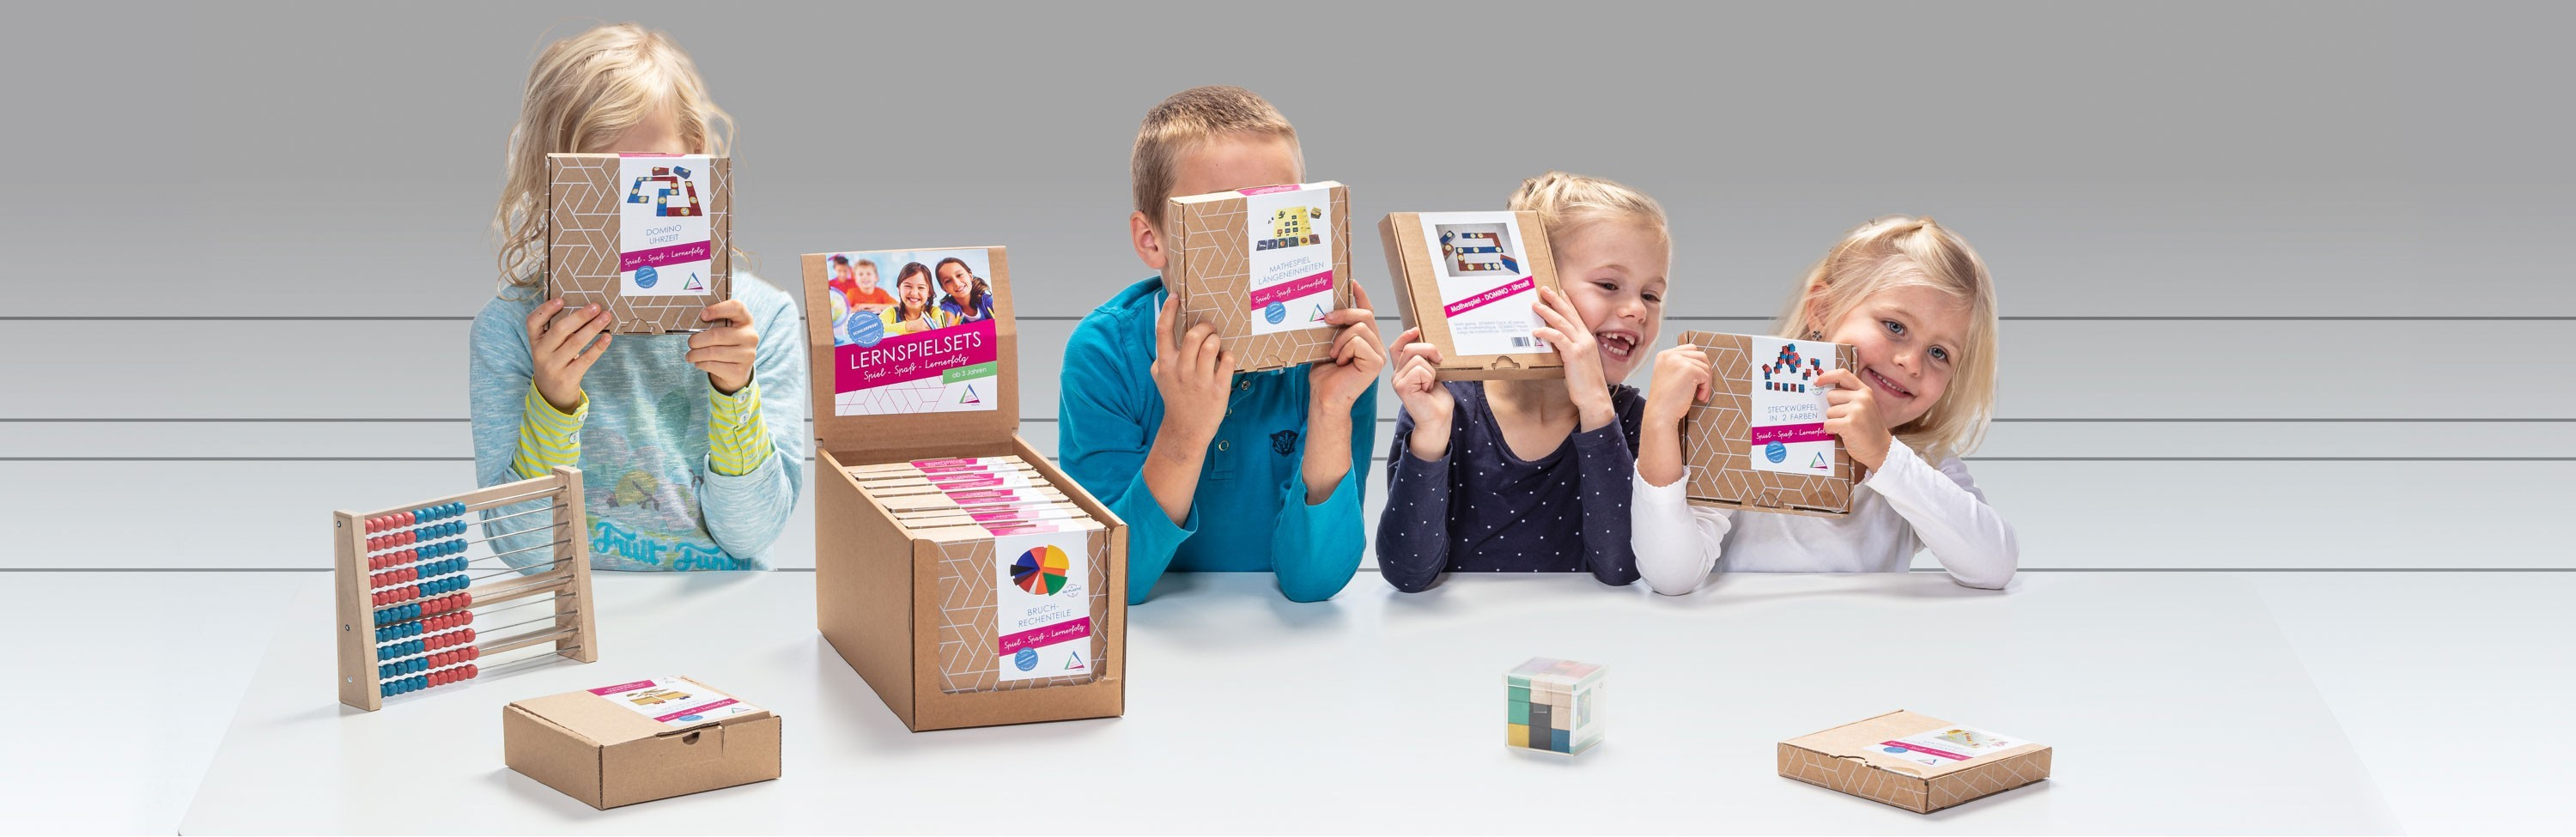 learning game sets